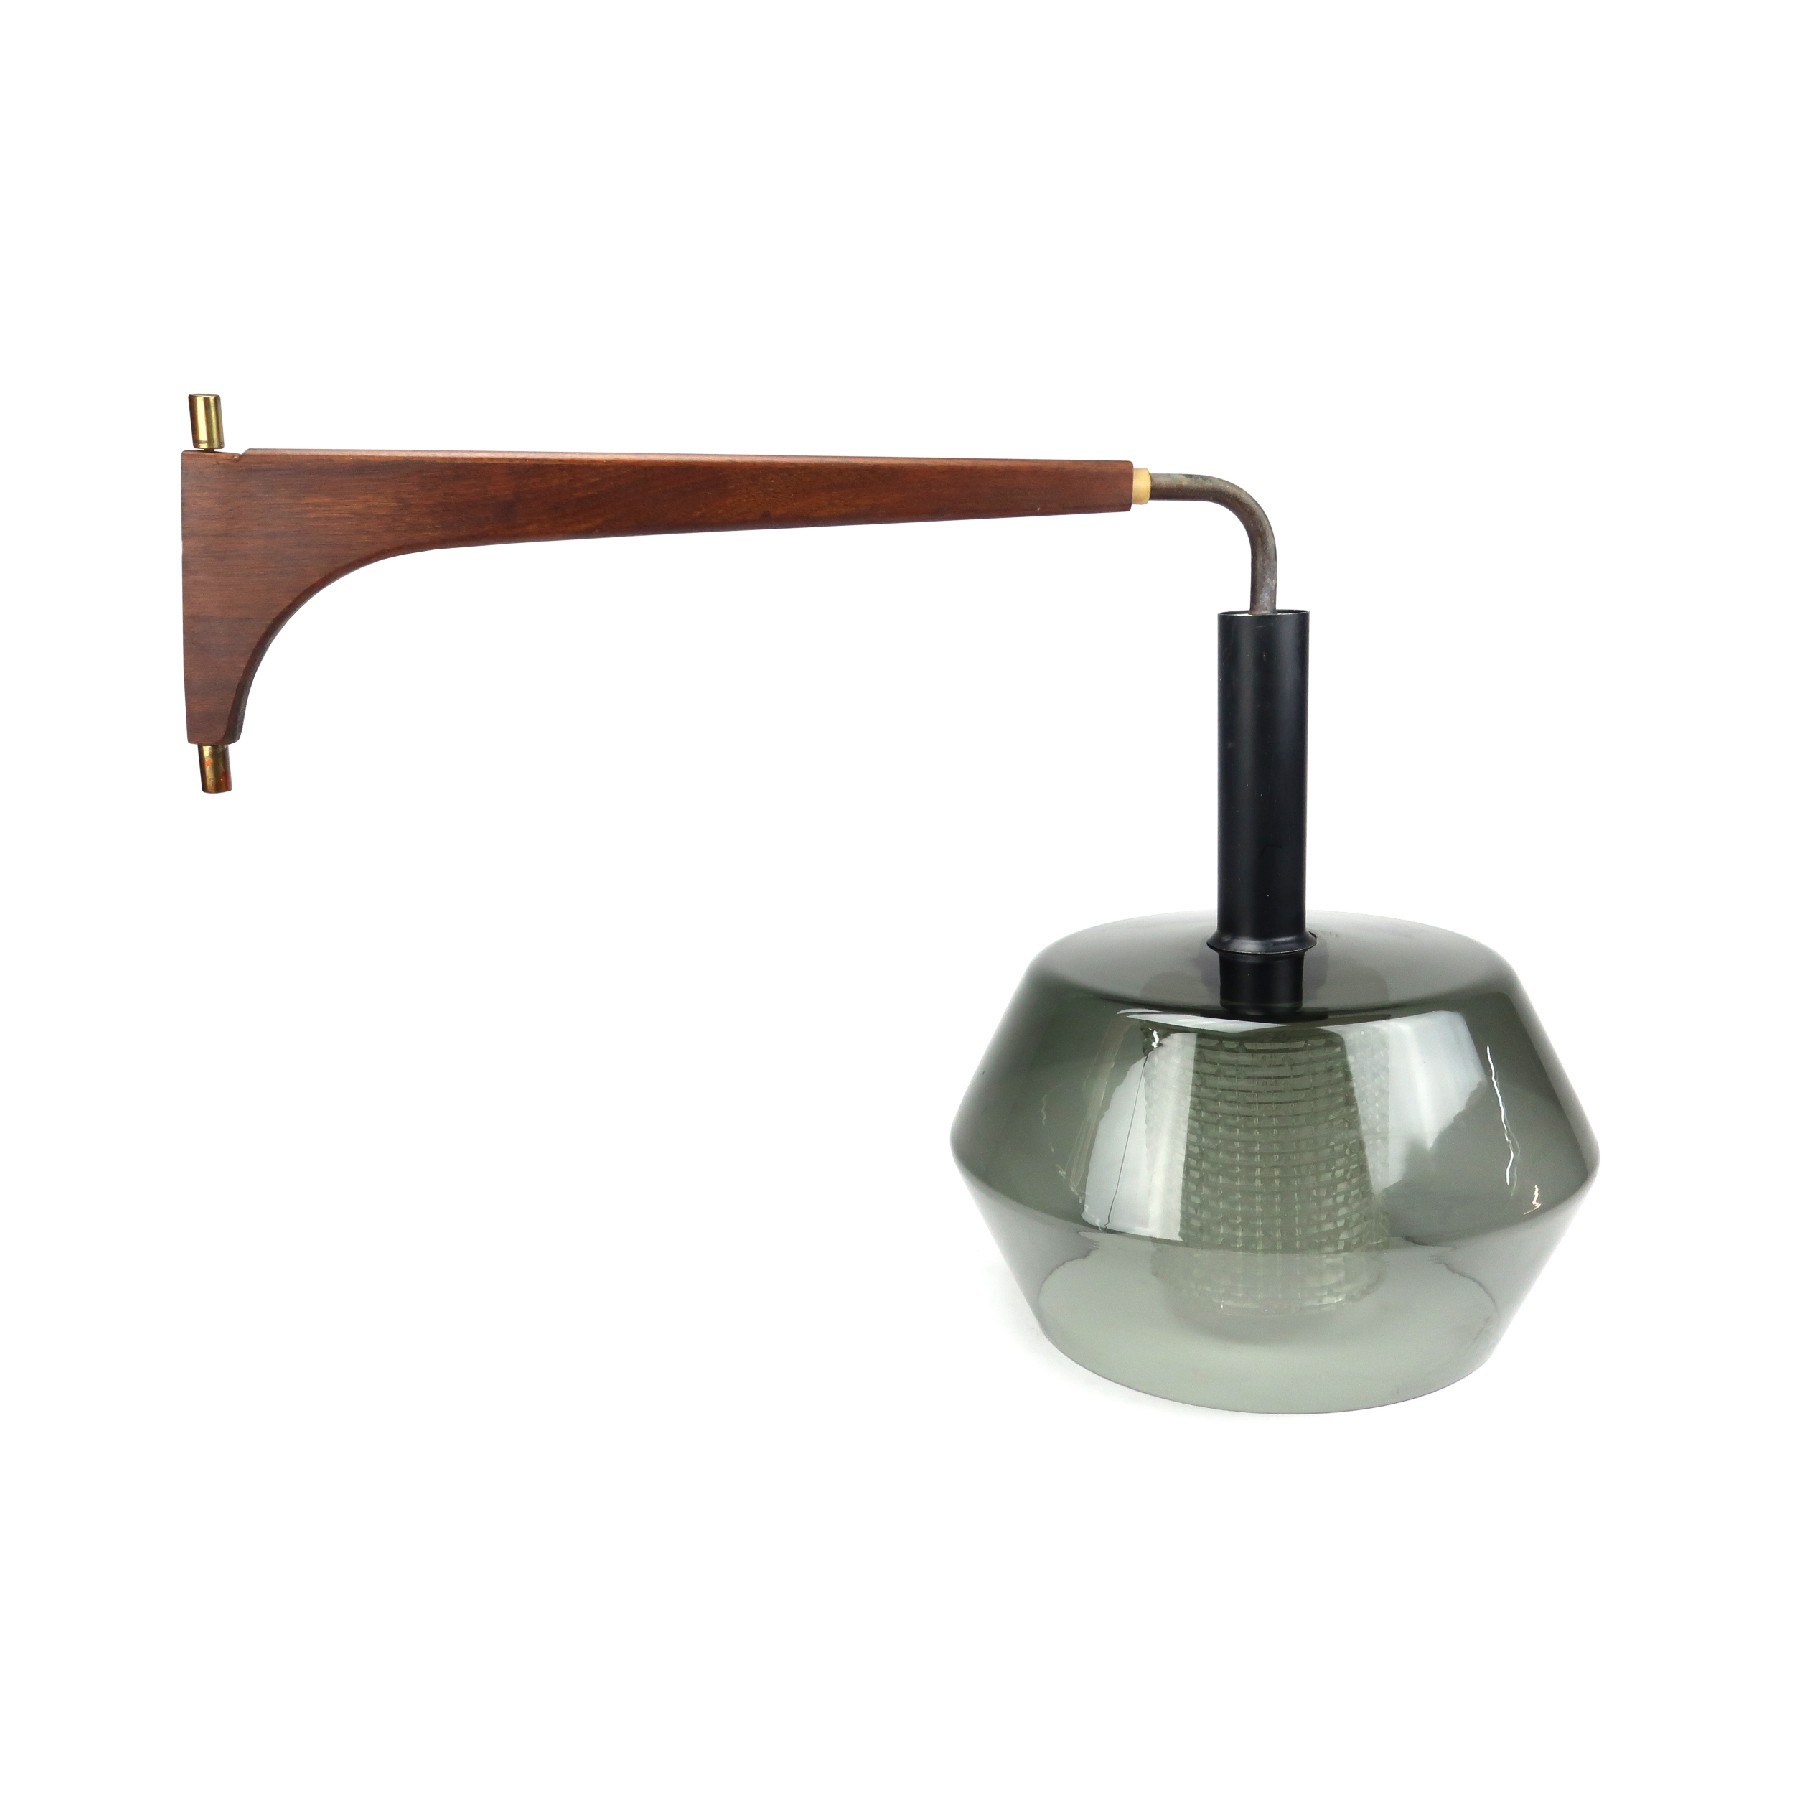 1960s Danish Adjustable Teak & Smoked Glass Pendant Lamp